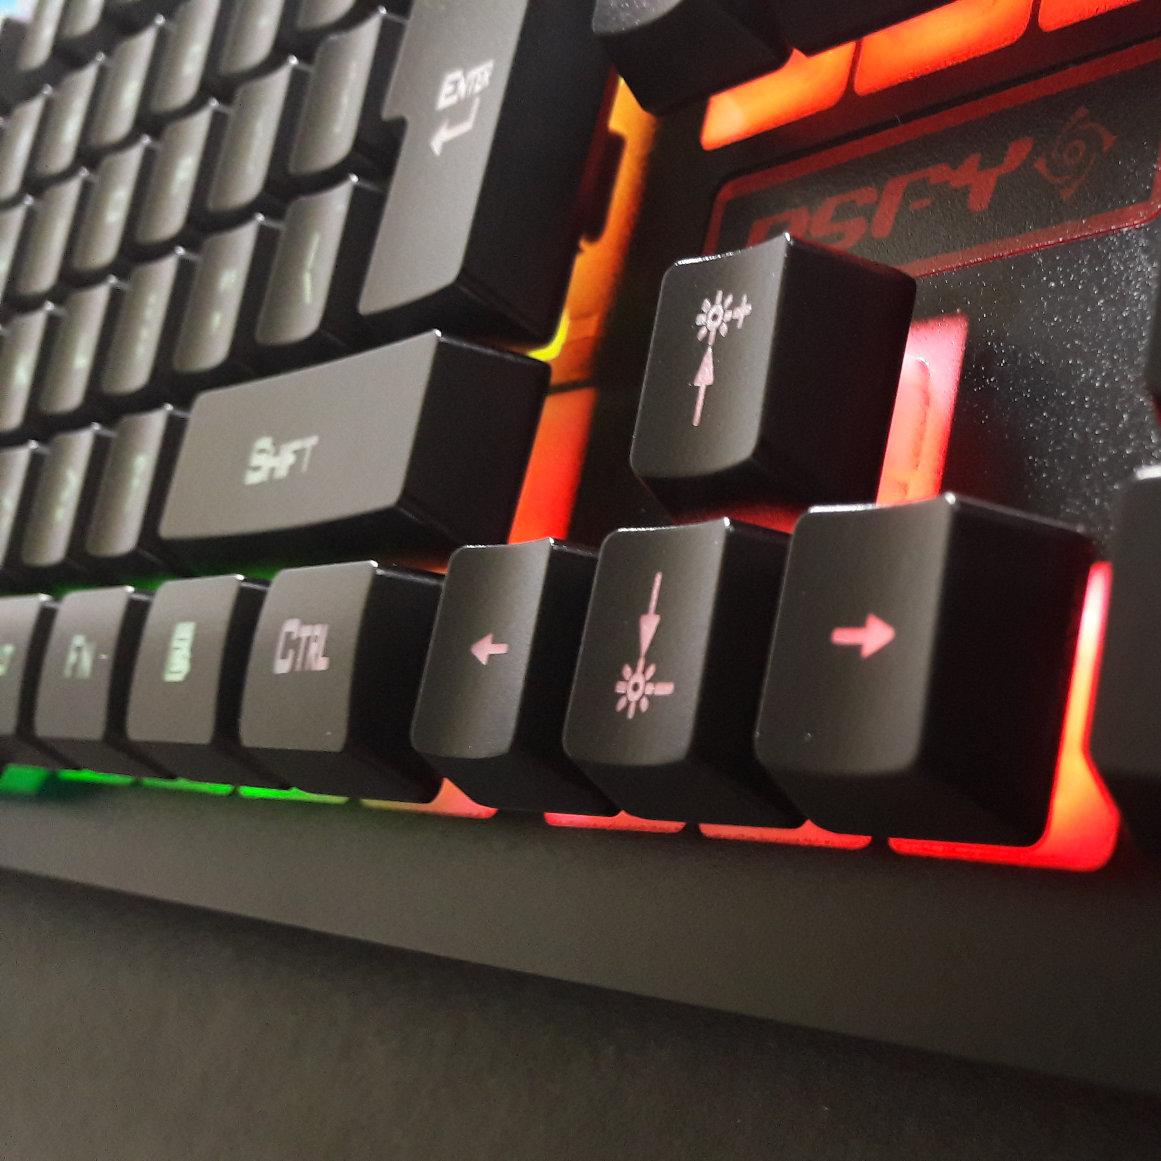 🆒 PSFY K-13 RGB Spectrum Gaming Keyboard